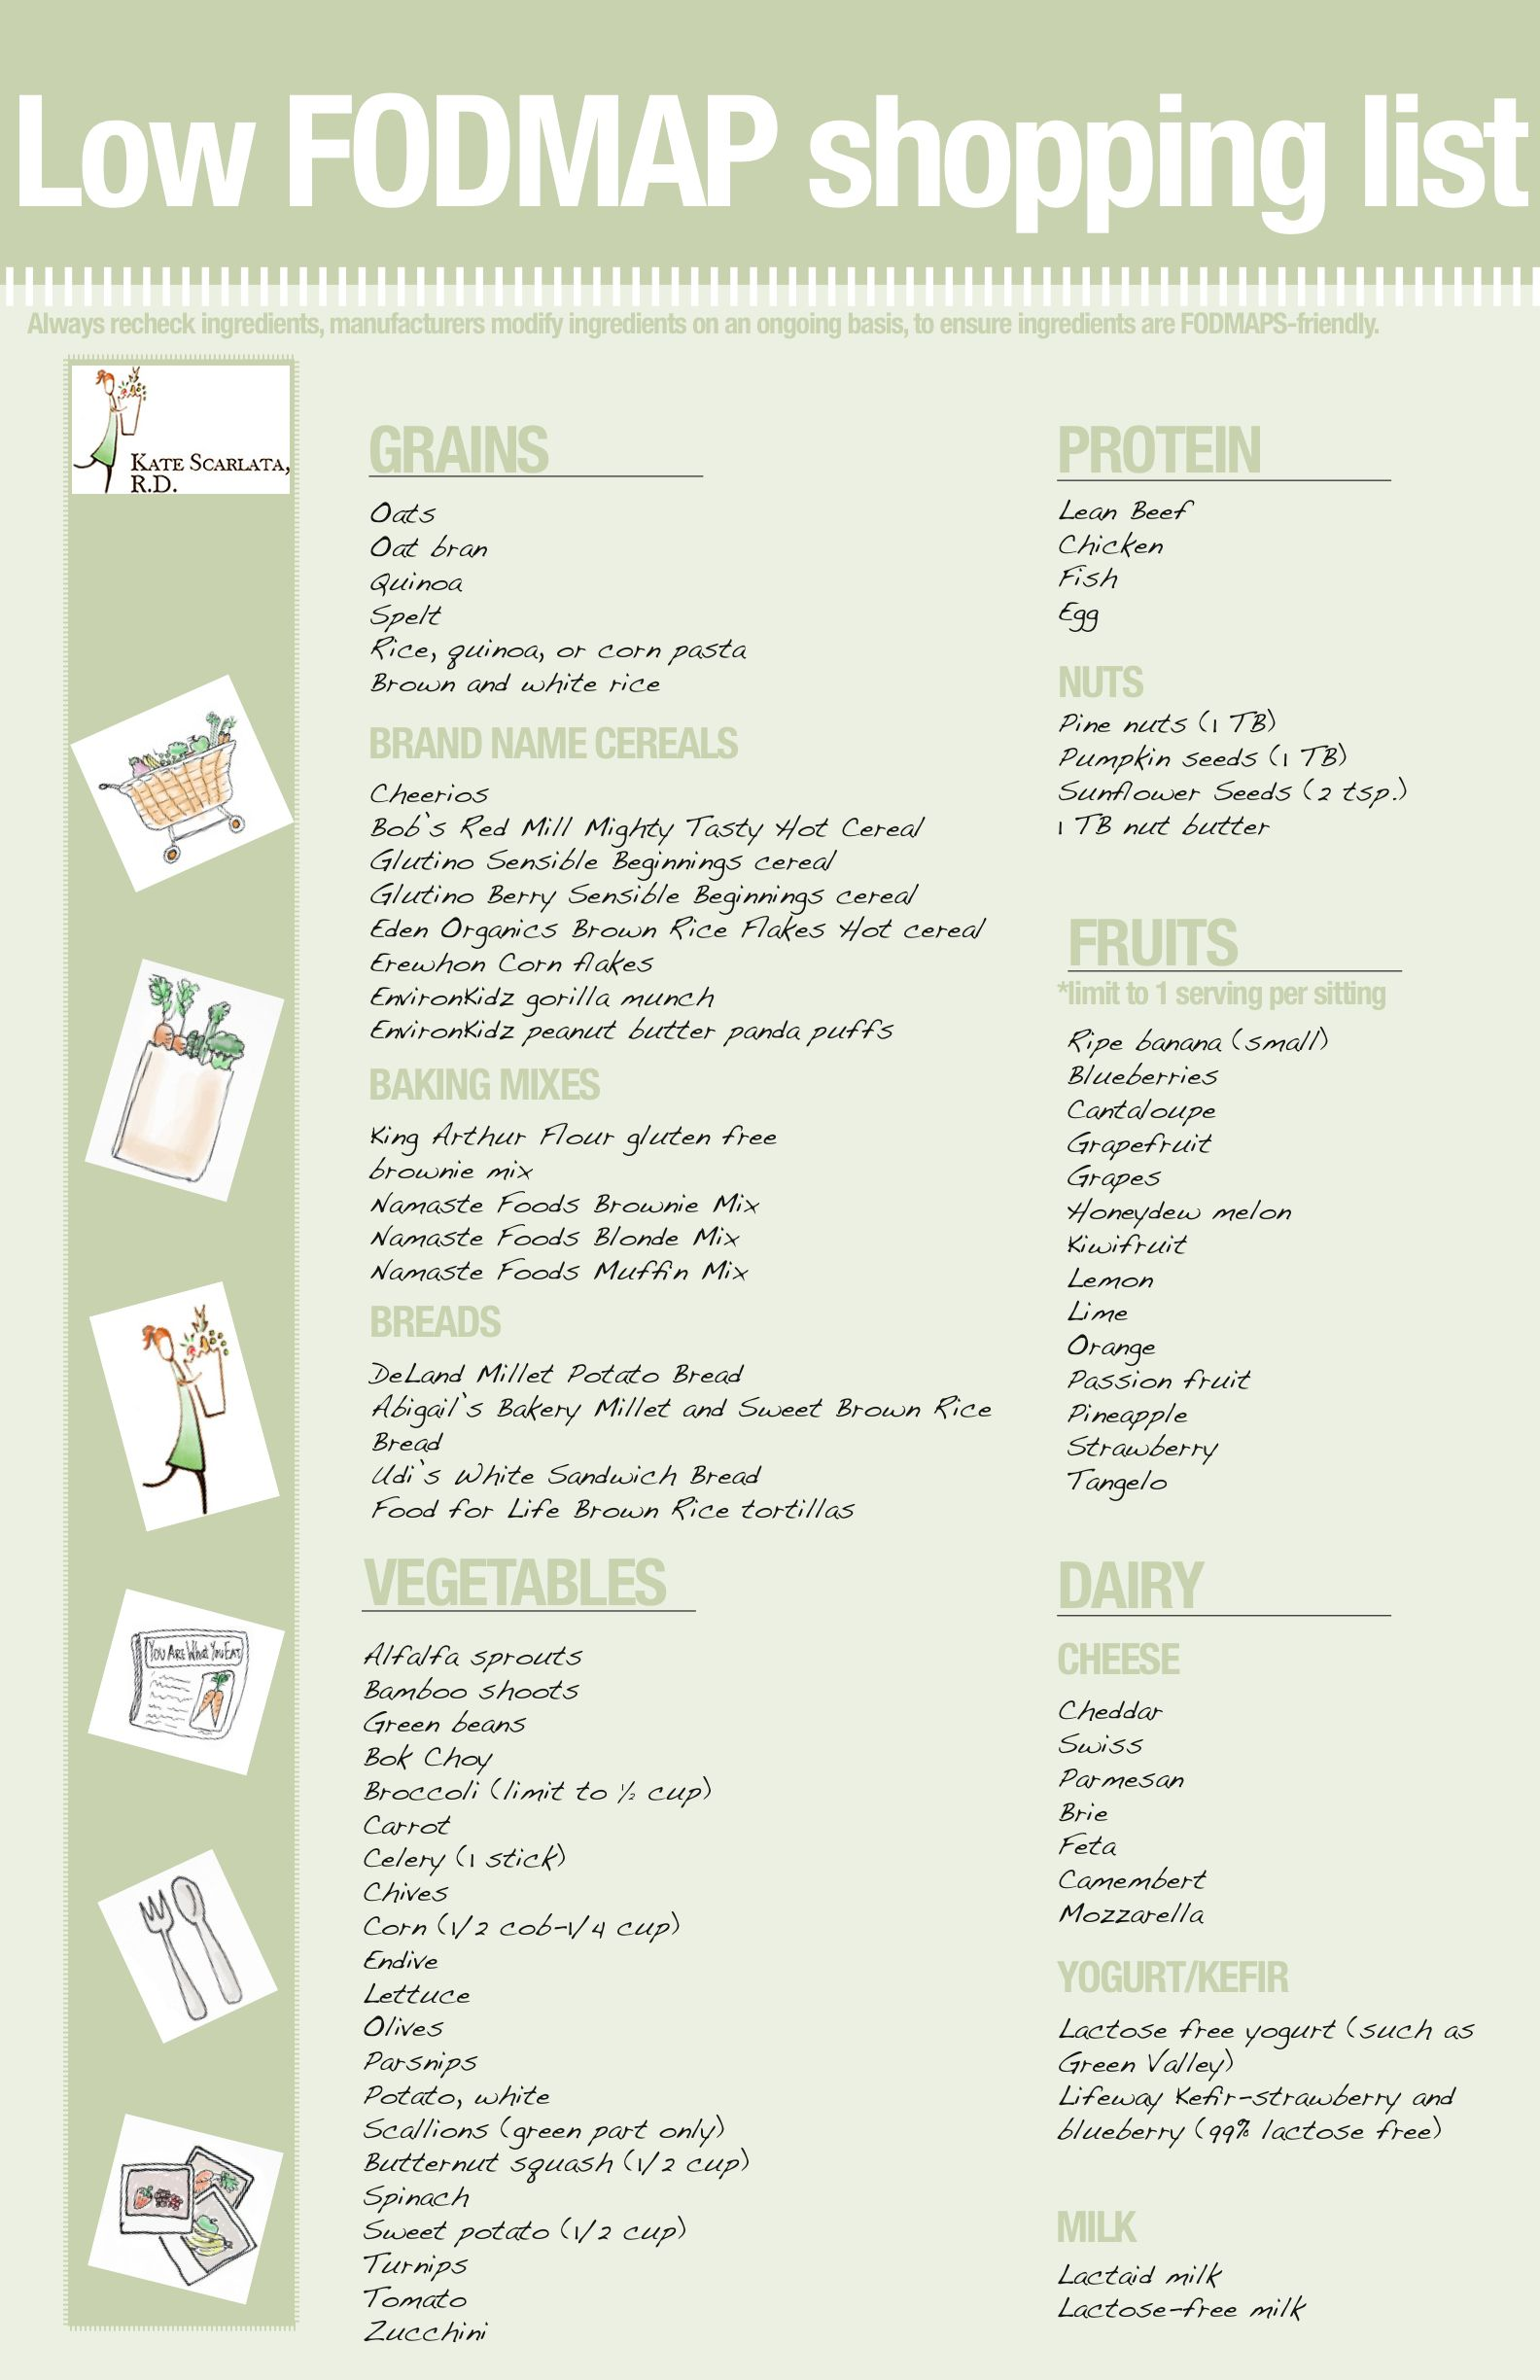 Top Low FODMAP grocery list | Liste de courses, Naturopathie et  QV58